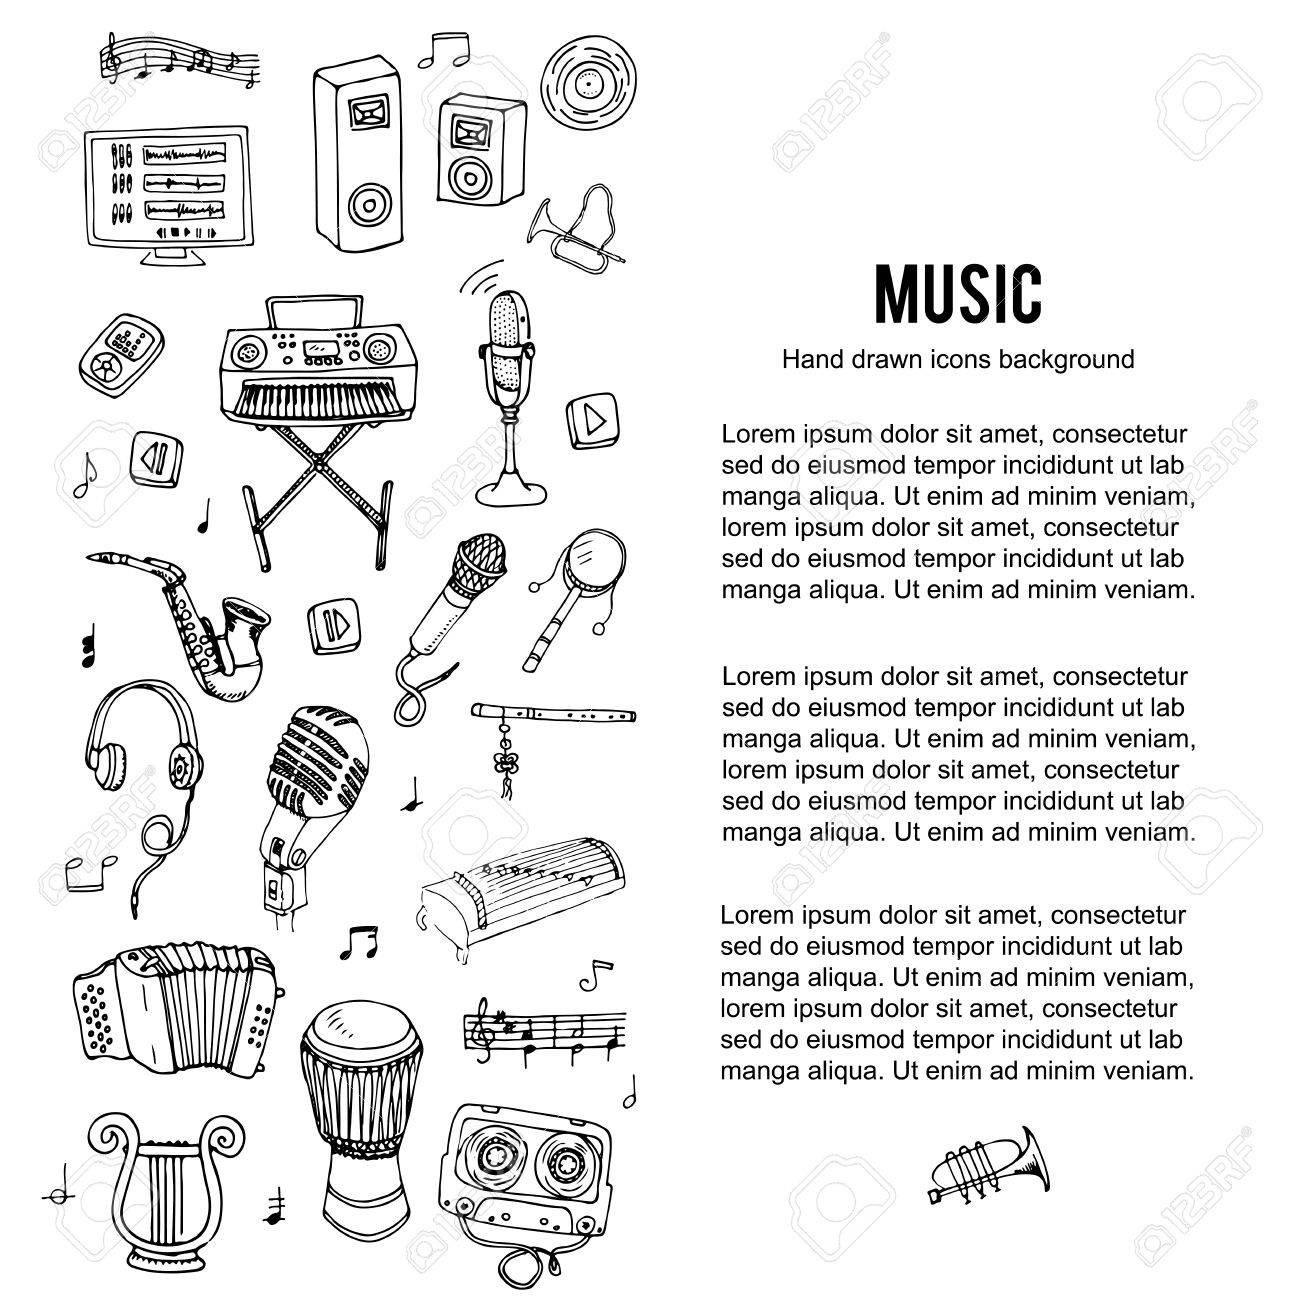 Hand drawn doodle music set vector illustration musical hand drawn doodle music set vector illustration musical instrument and symbols icons collection biocorpaavc Gallery